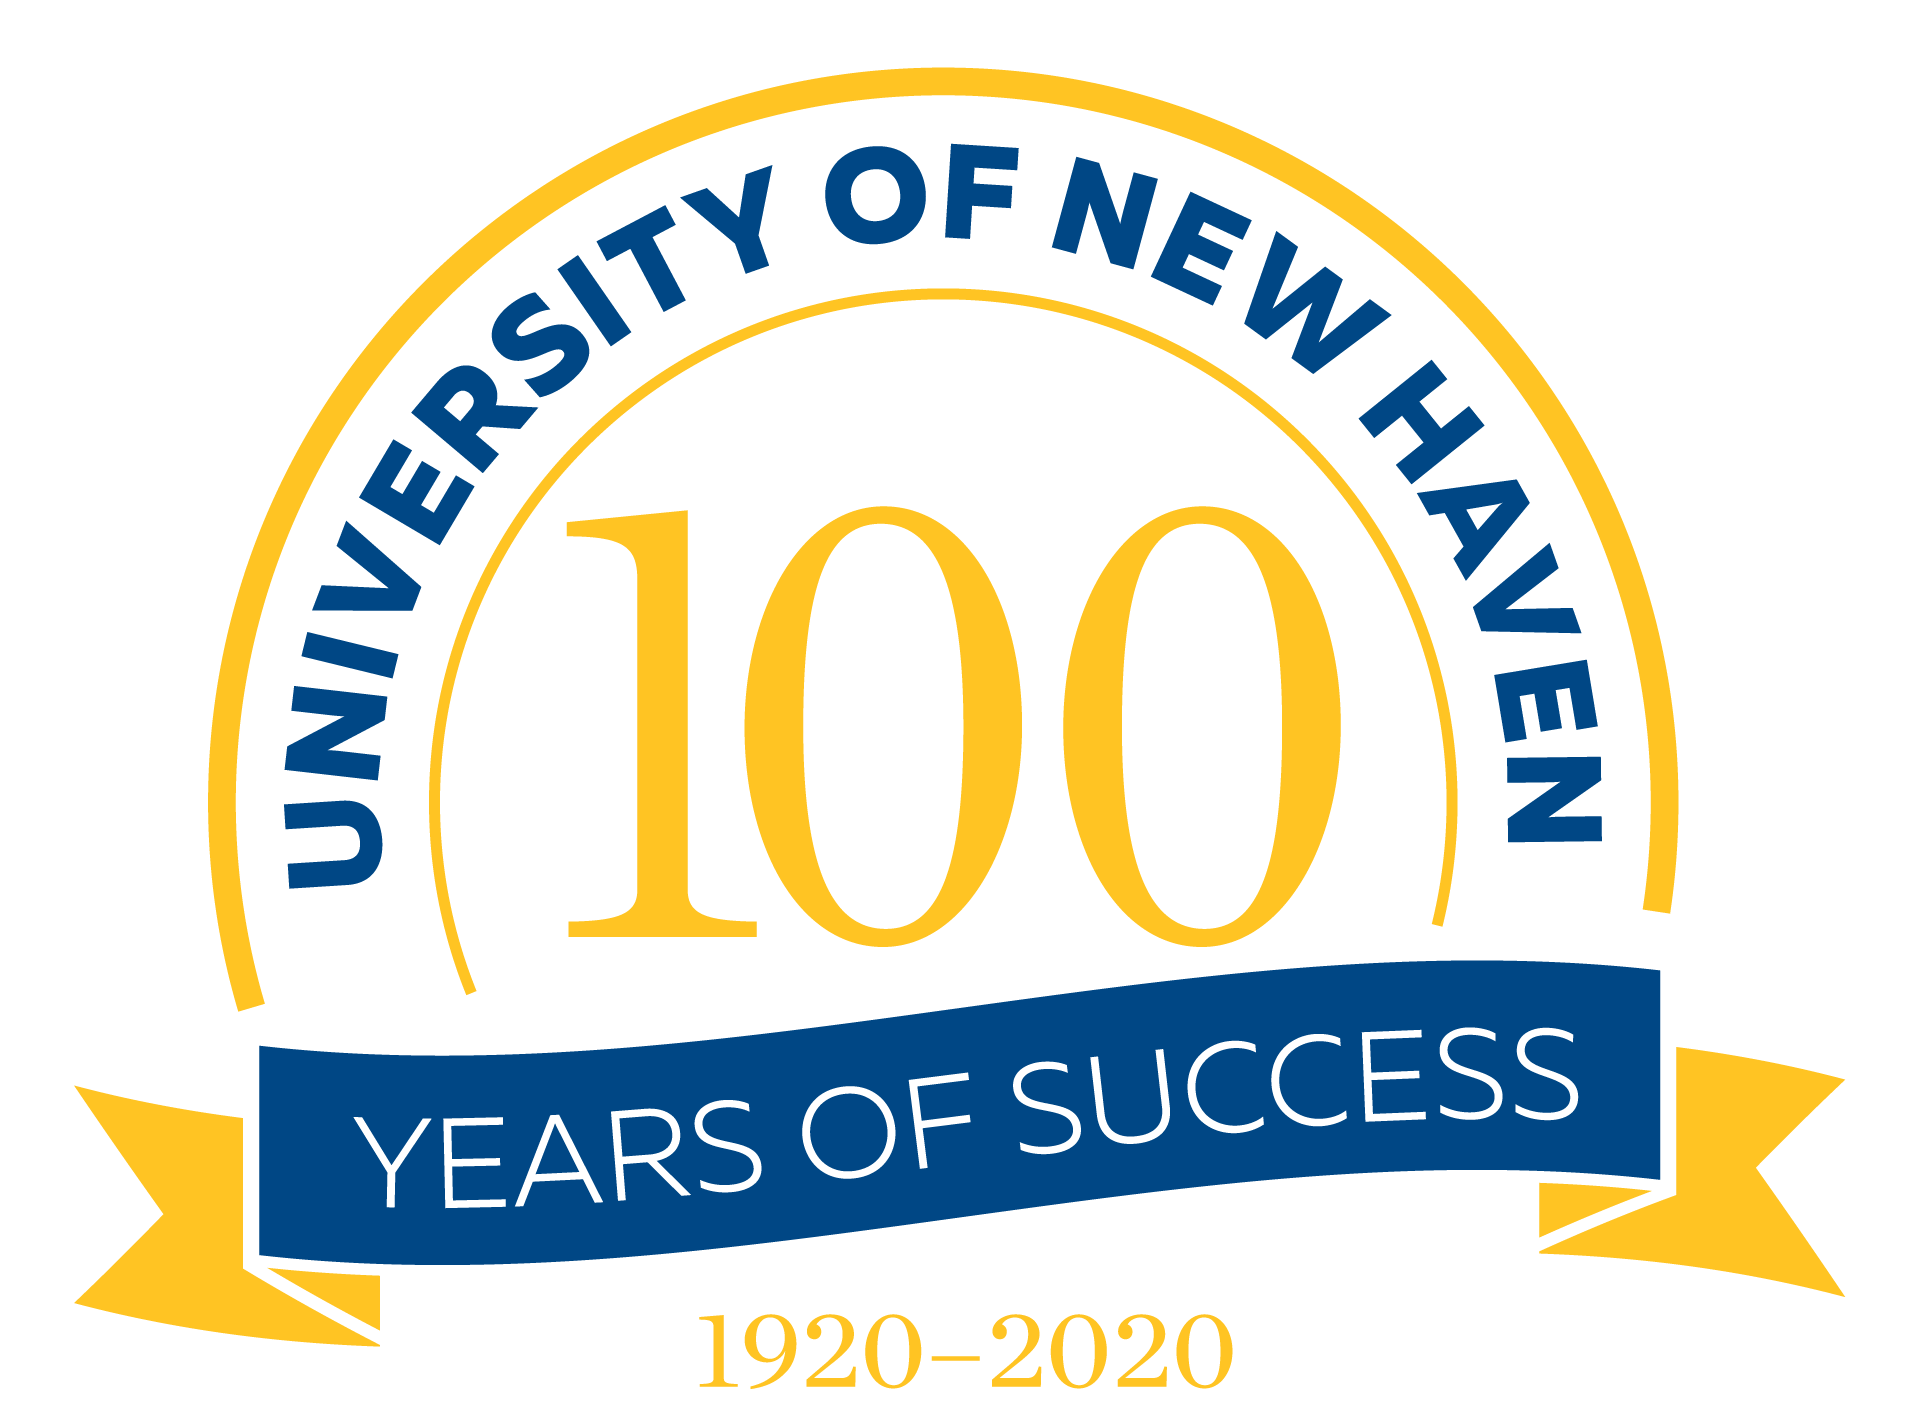 University of New Haven Centennial logo